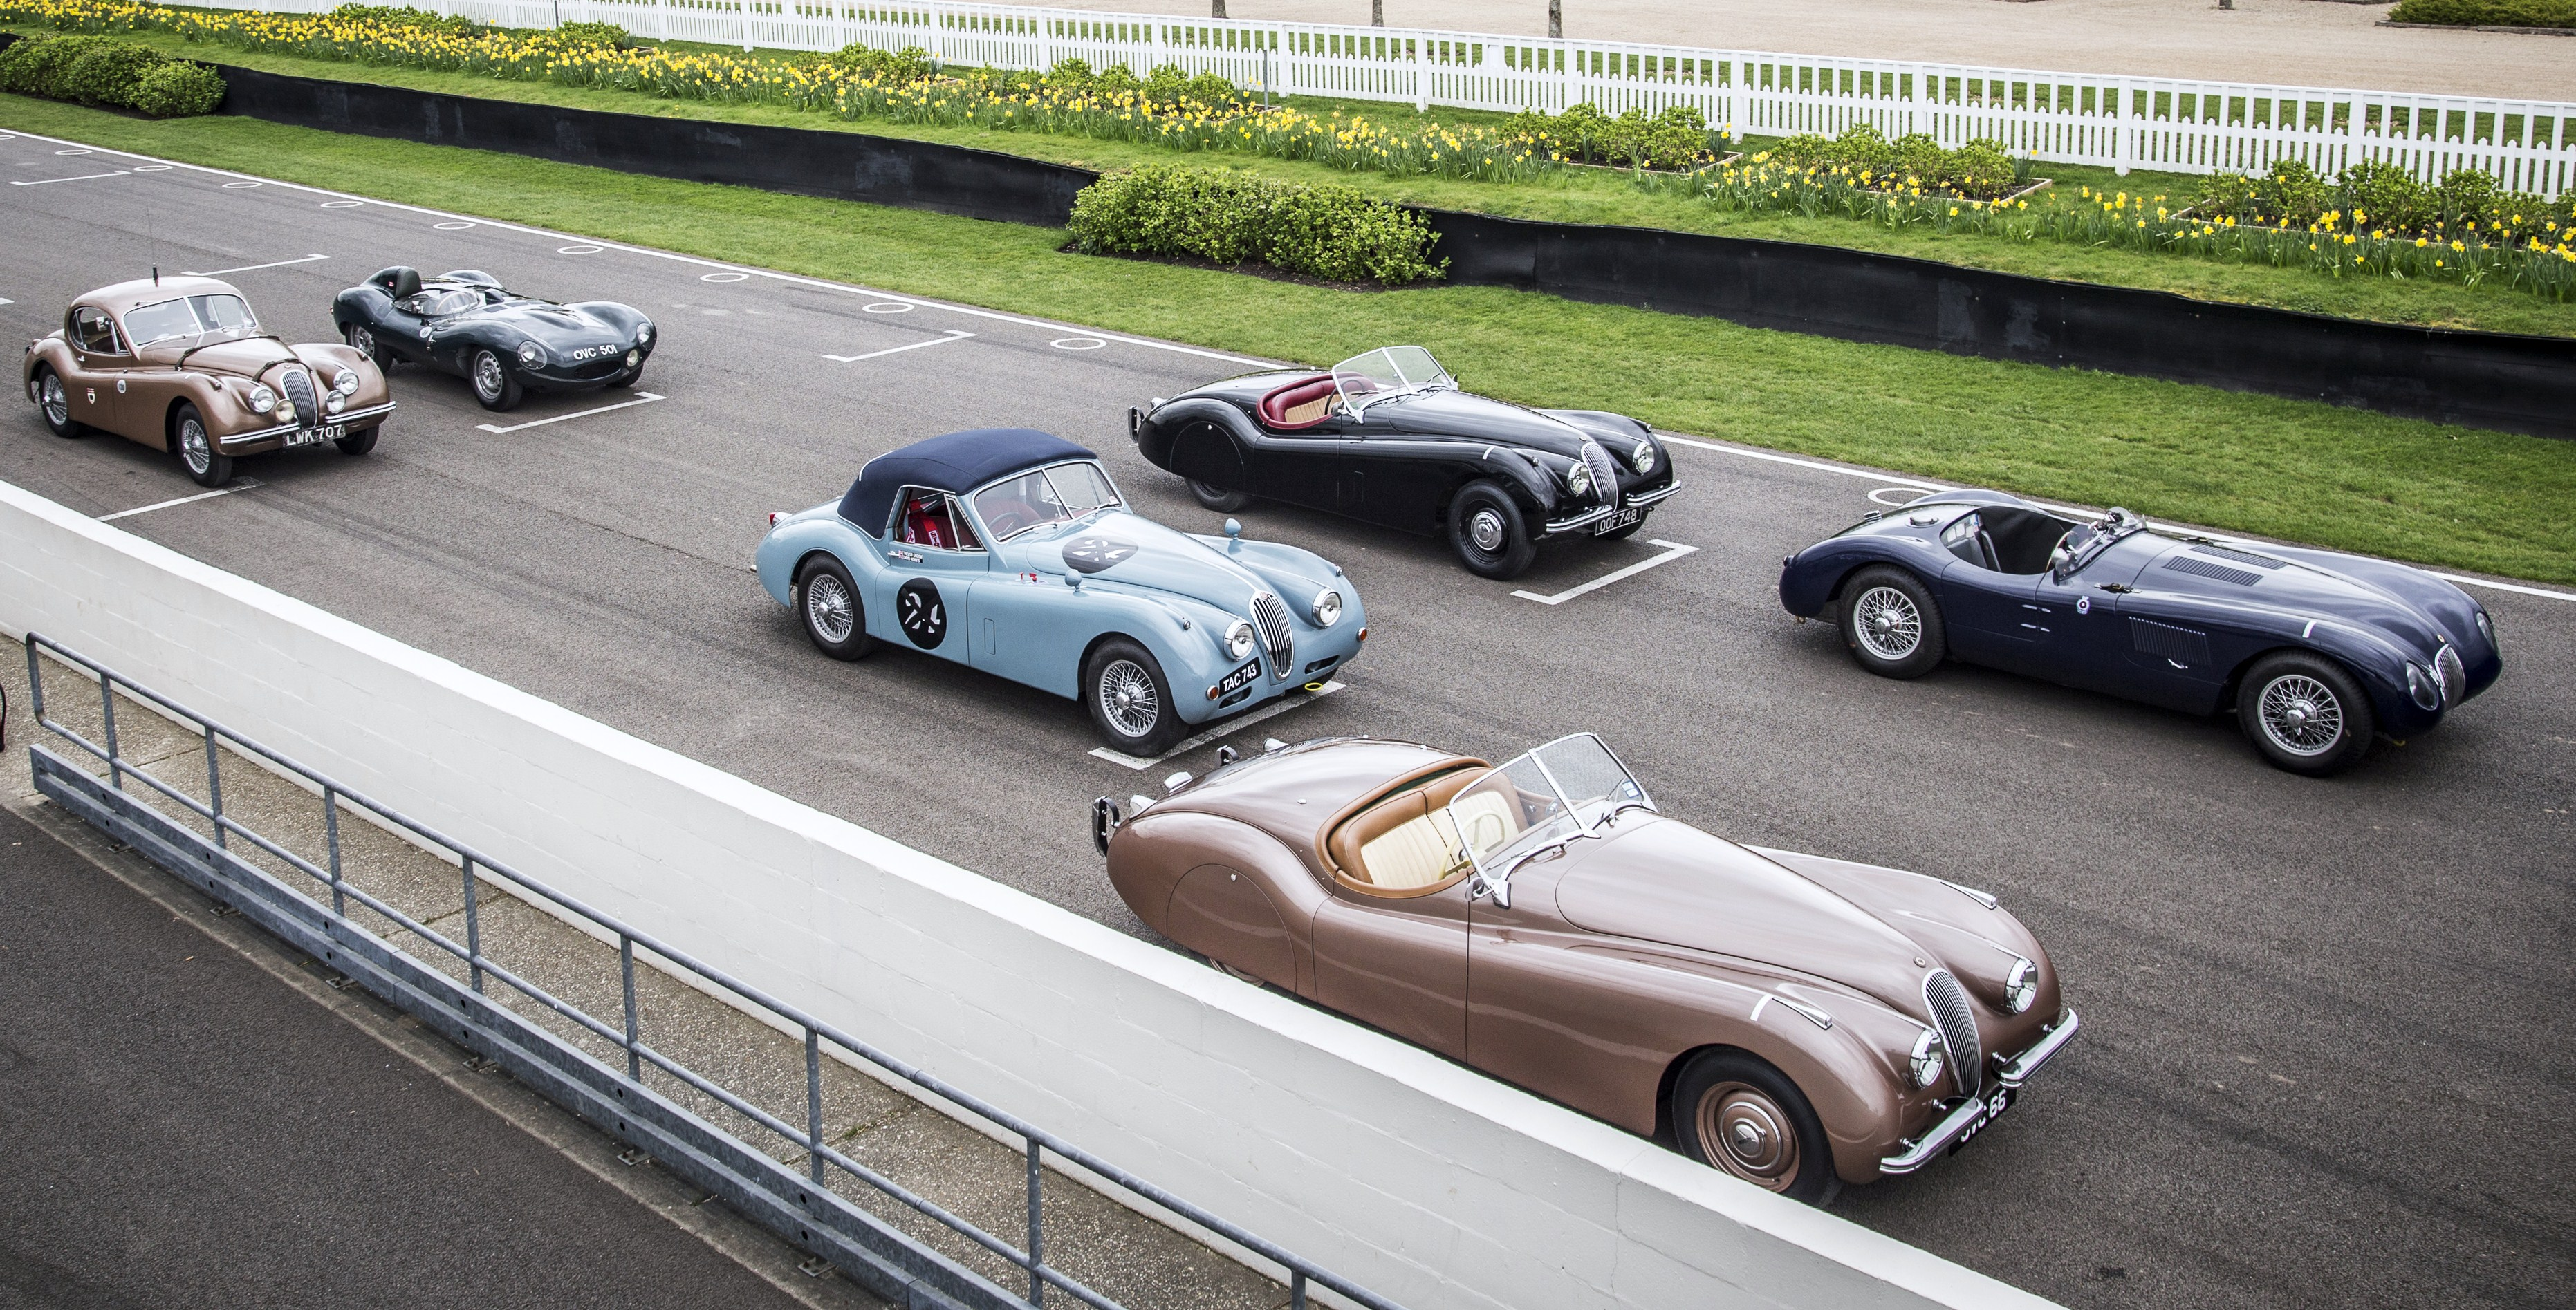 Famous Jaguar Sports Cars Racers Entered In Mille Miglia - Famous classic cars